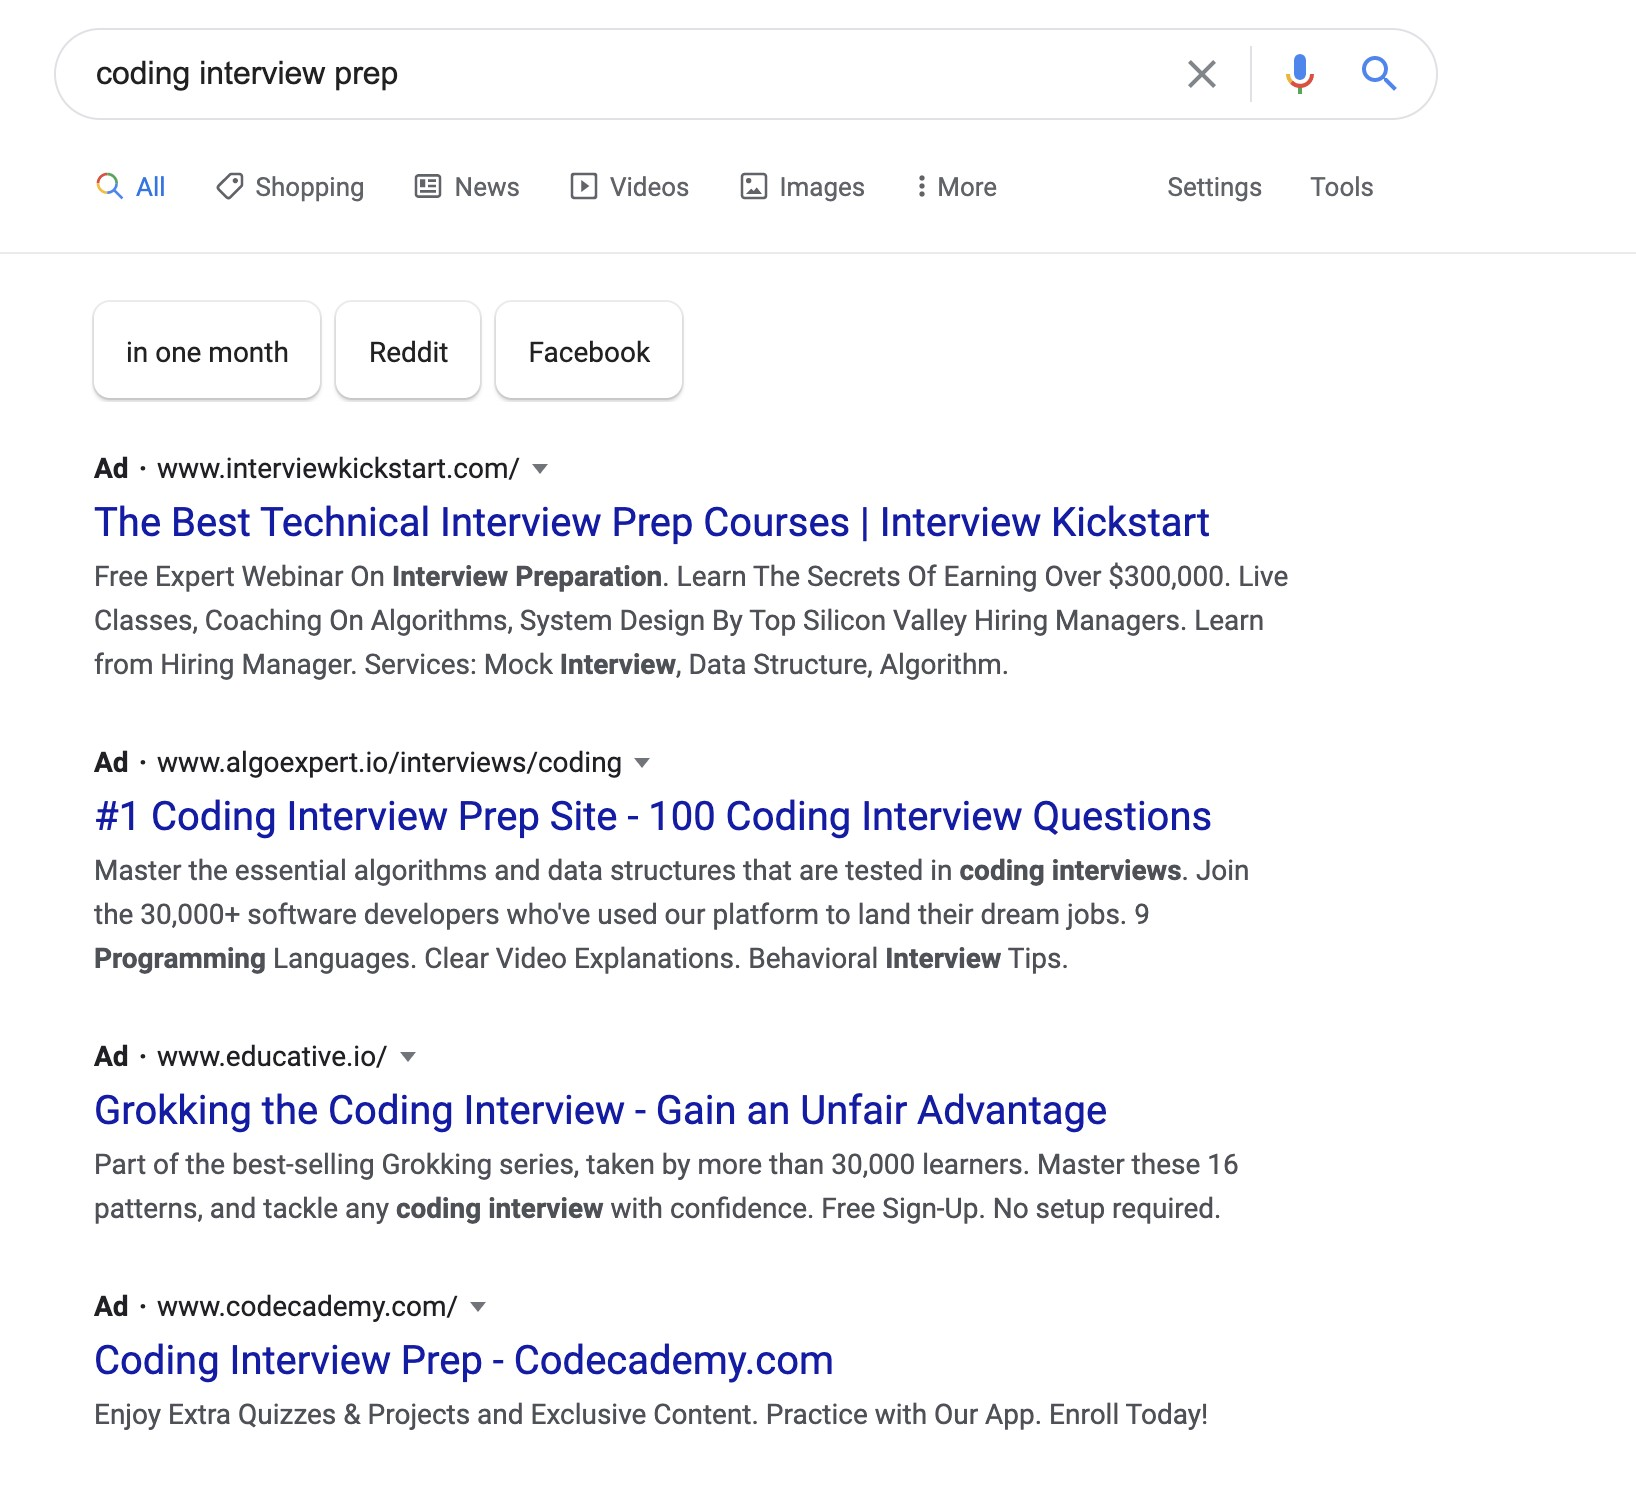 Google ads for technical interview prep